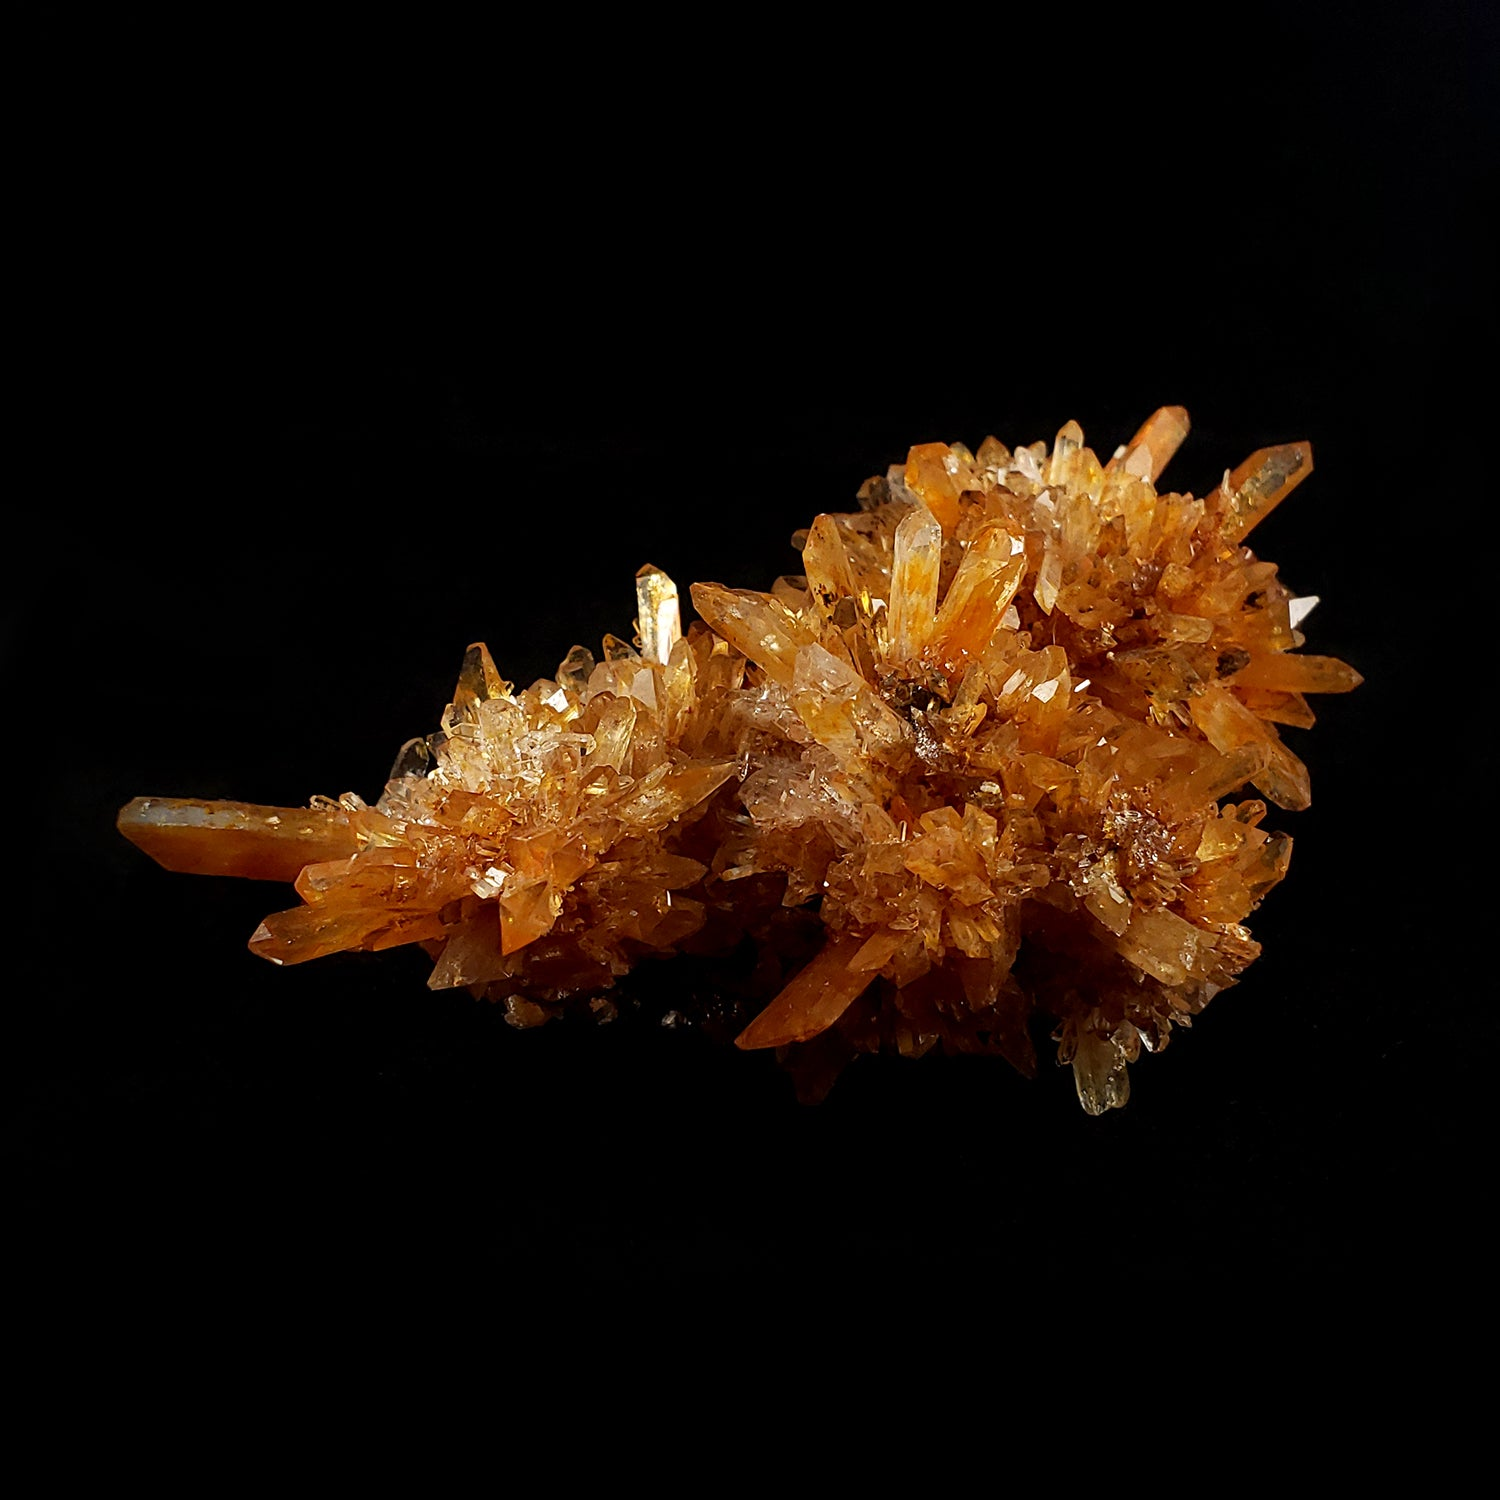 Orange Creedite from Navidad Mine, Durango, Mexico